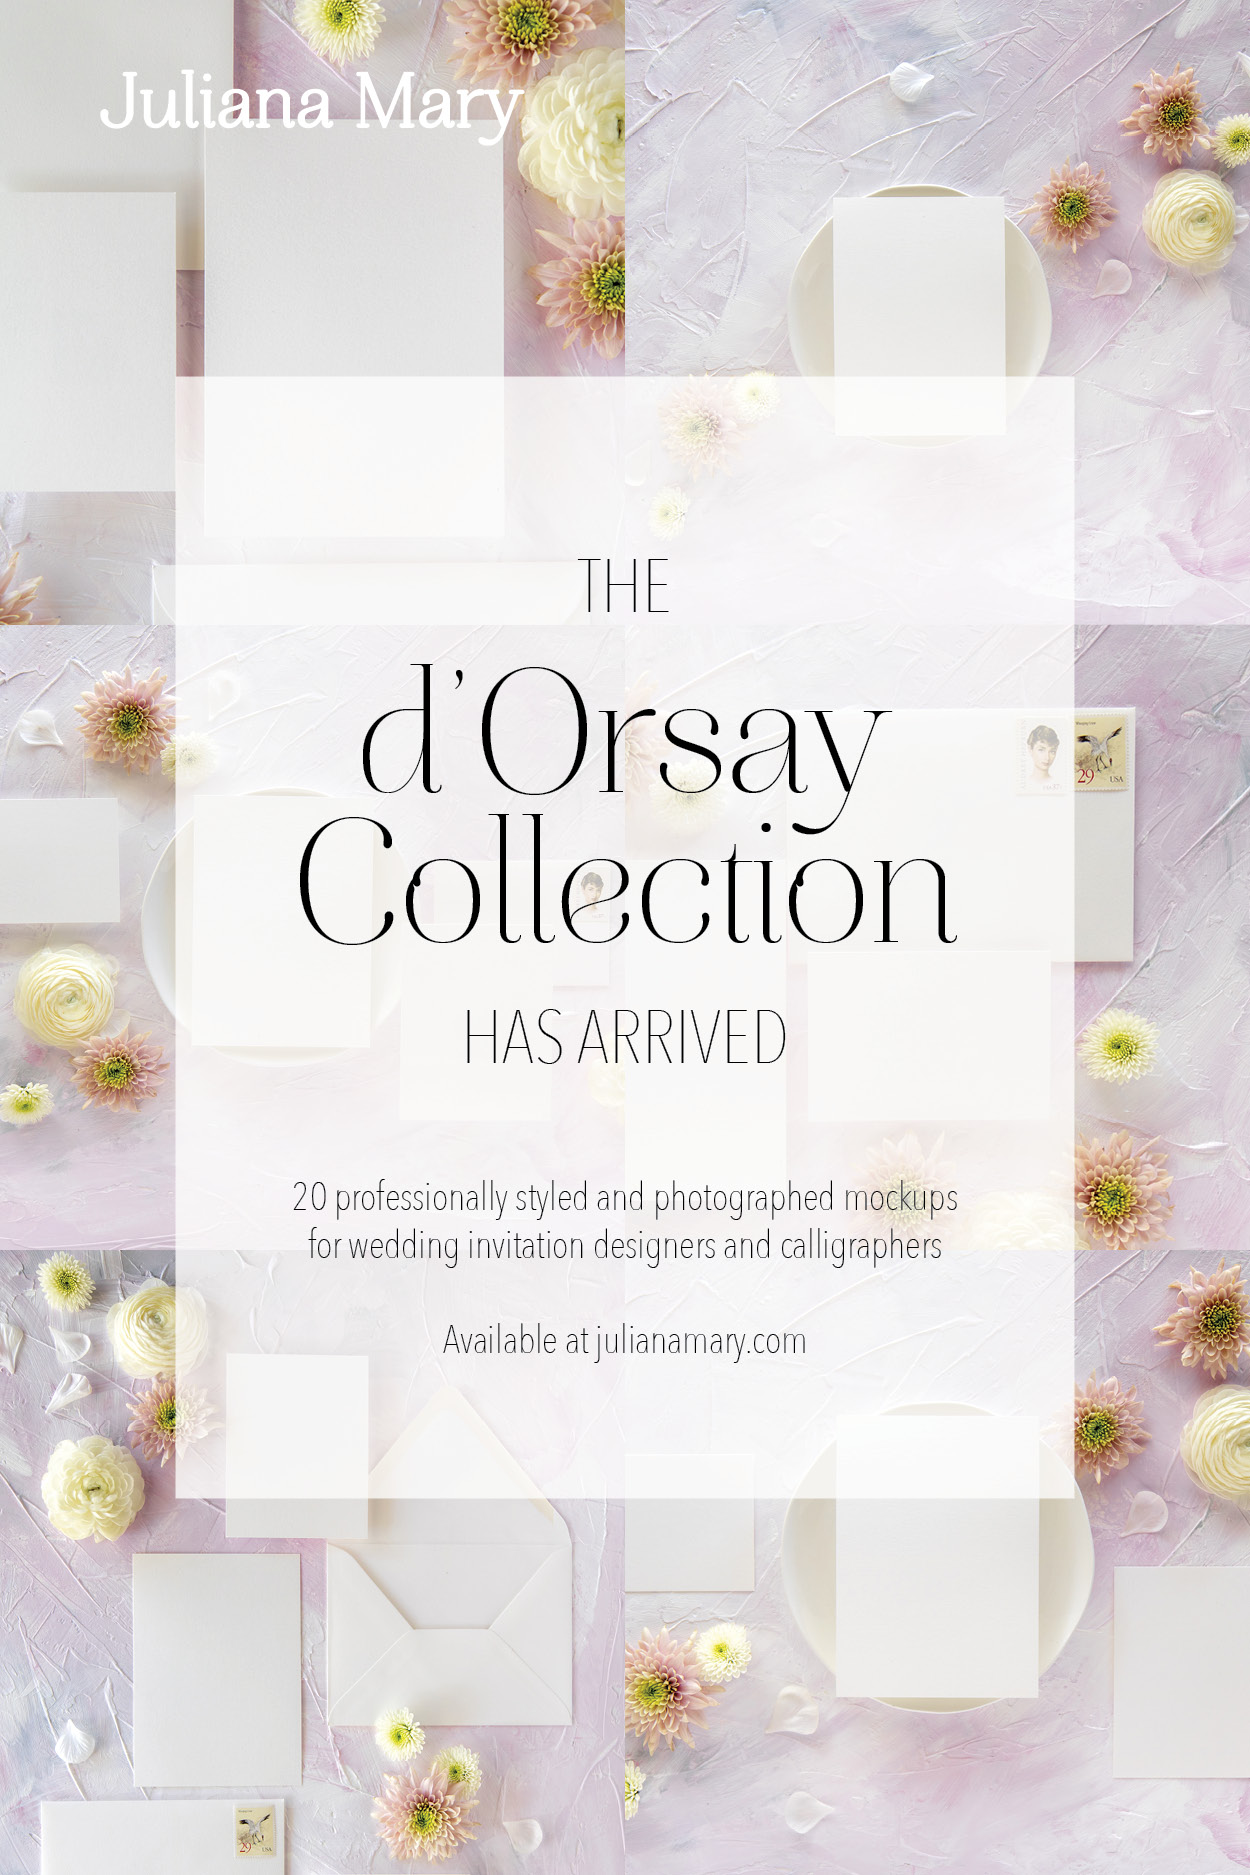 d'Orsay Collection Announcements2.jpg